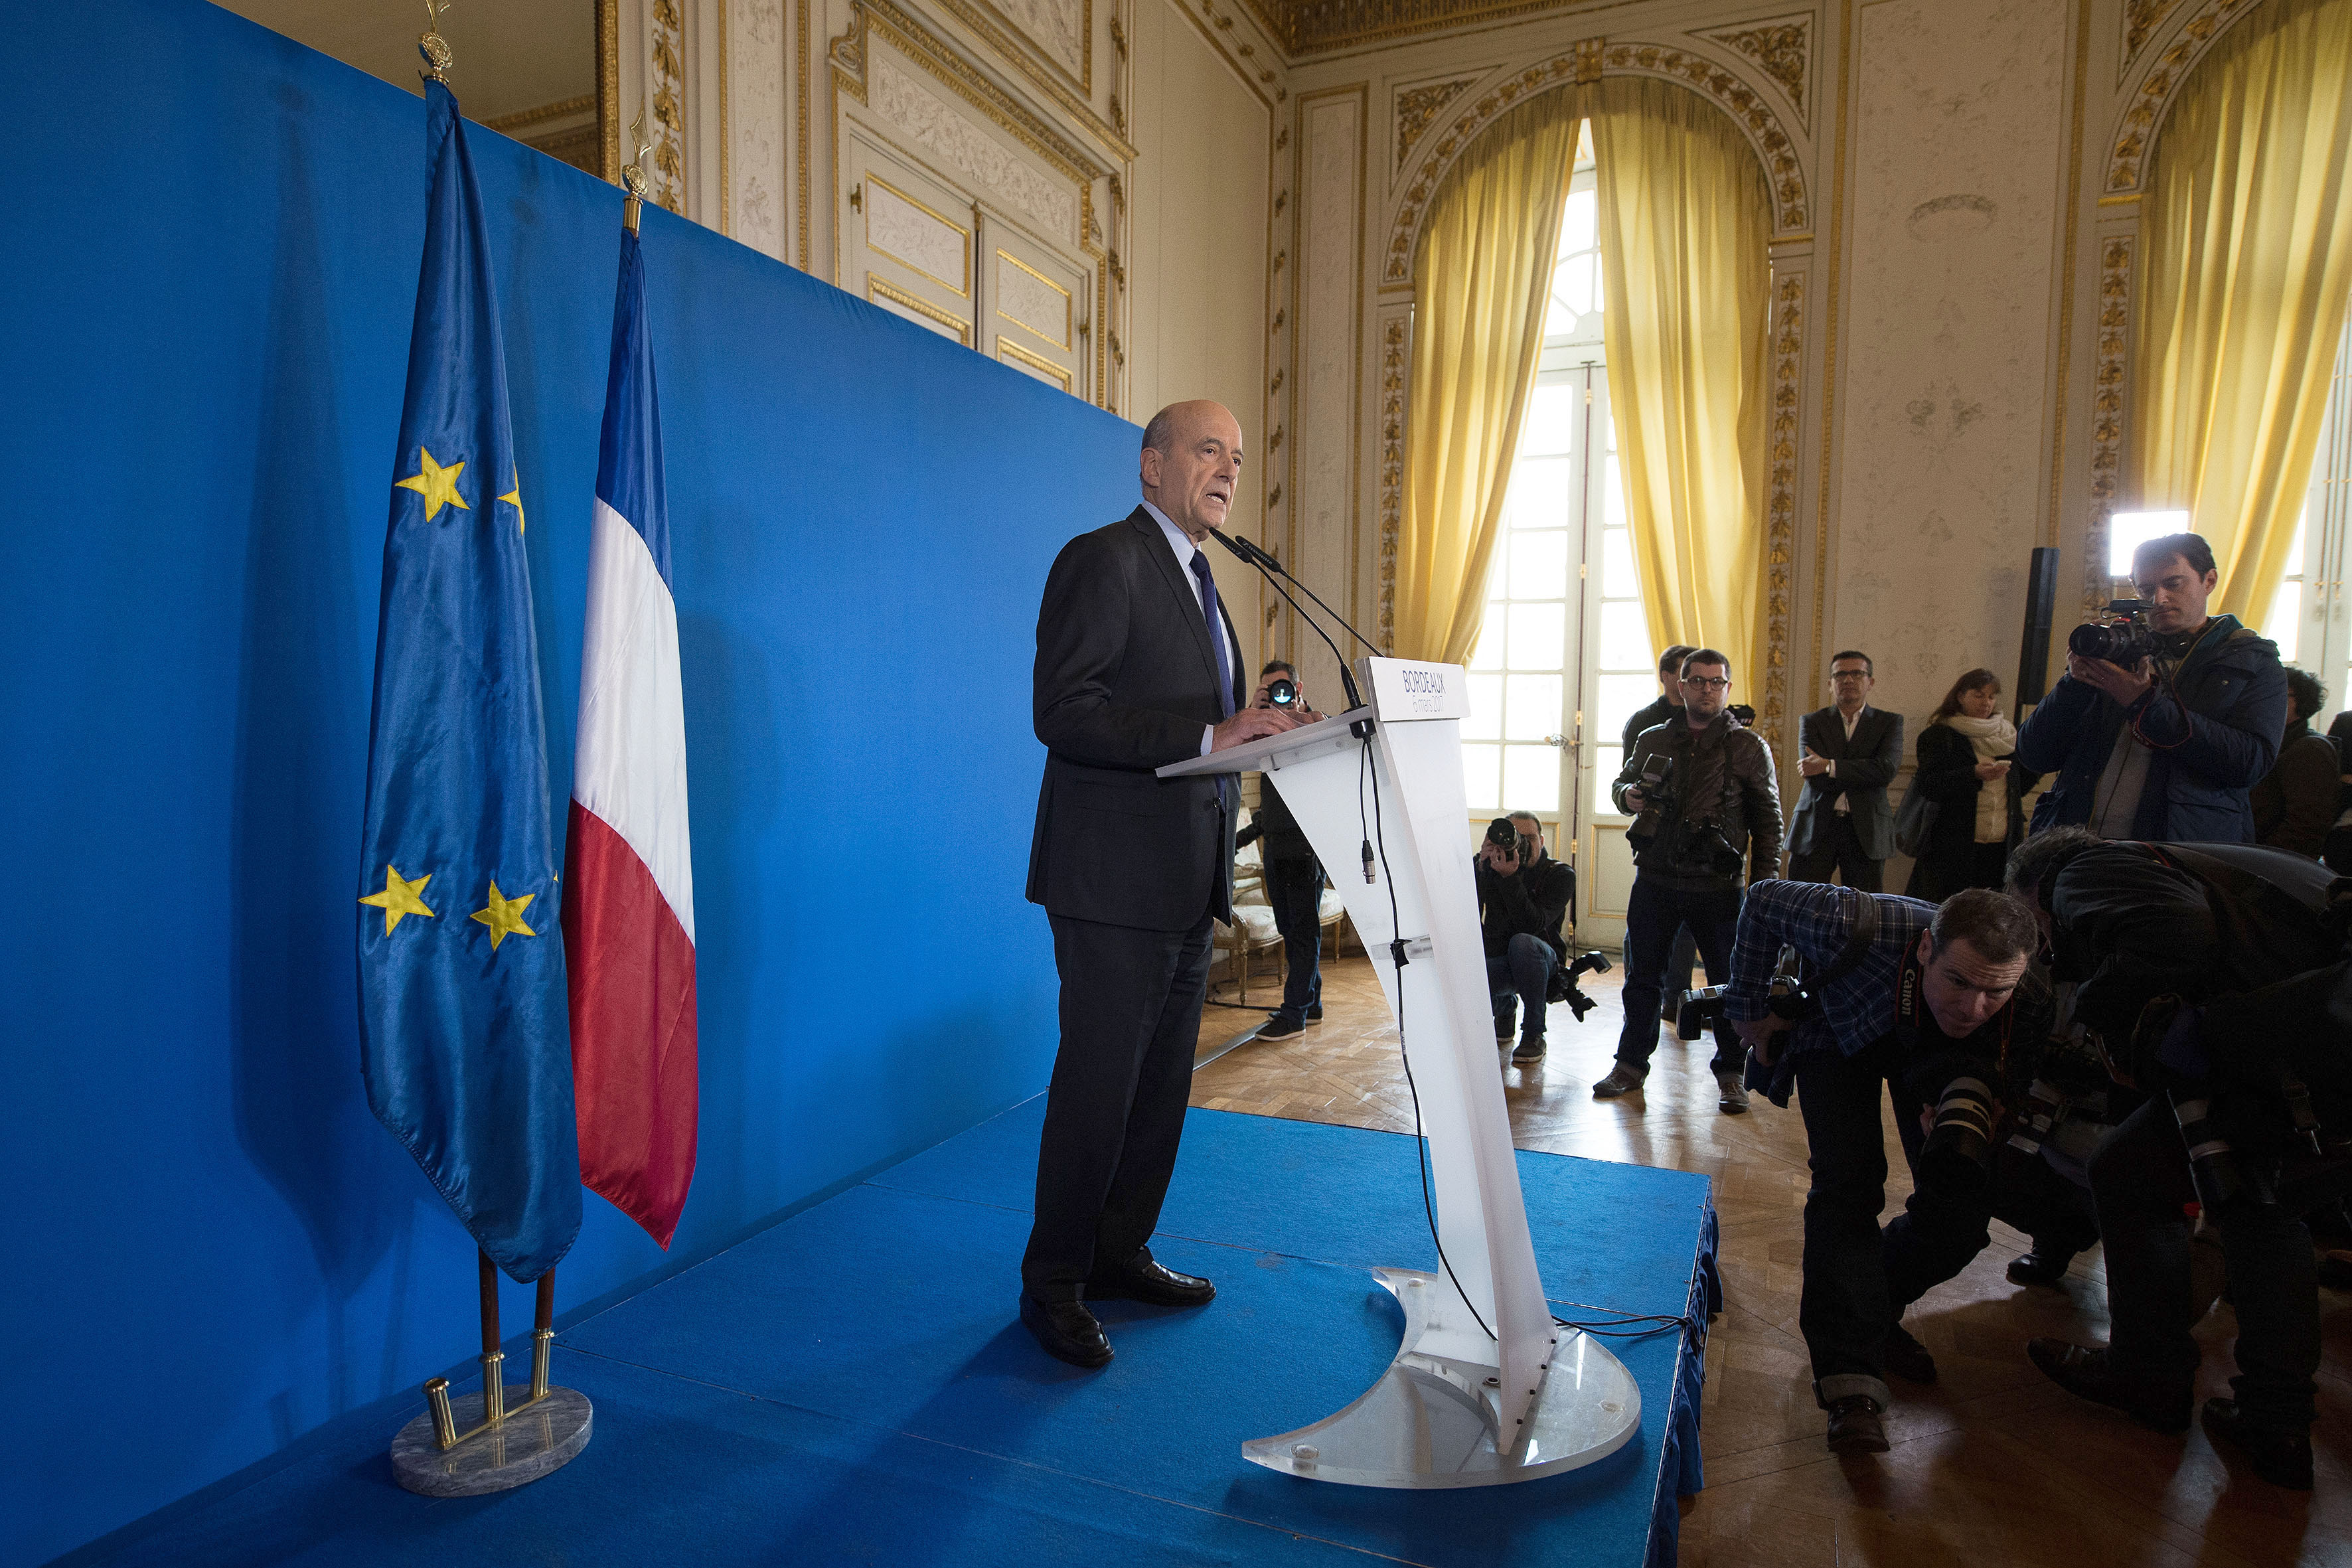 were the french right to execute How to say ___ in french french translation help share flipboard email  if you speak some french, your best bet is to use a french dictionary - but the right way.